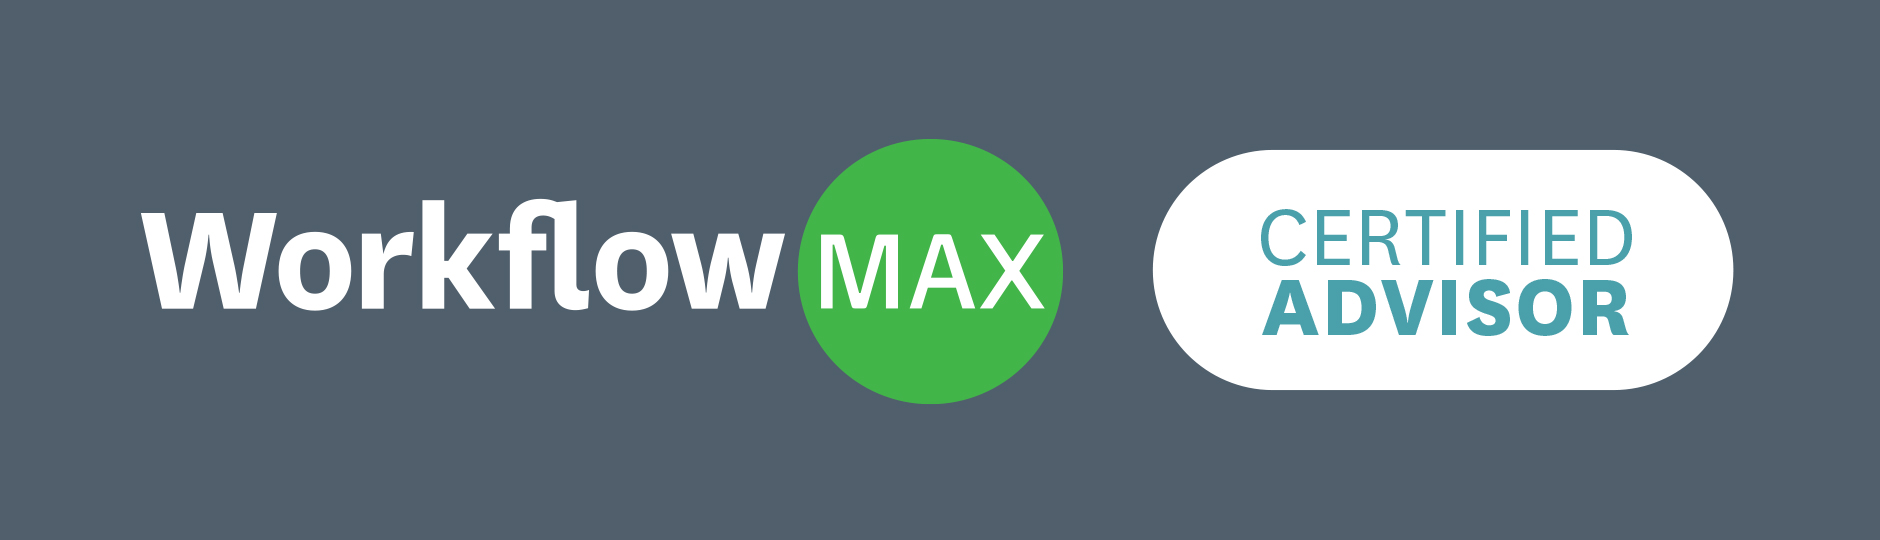 Worflow-max-certified-advisor-whakatane-accountants